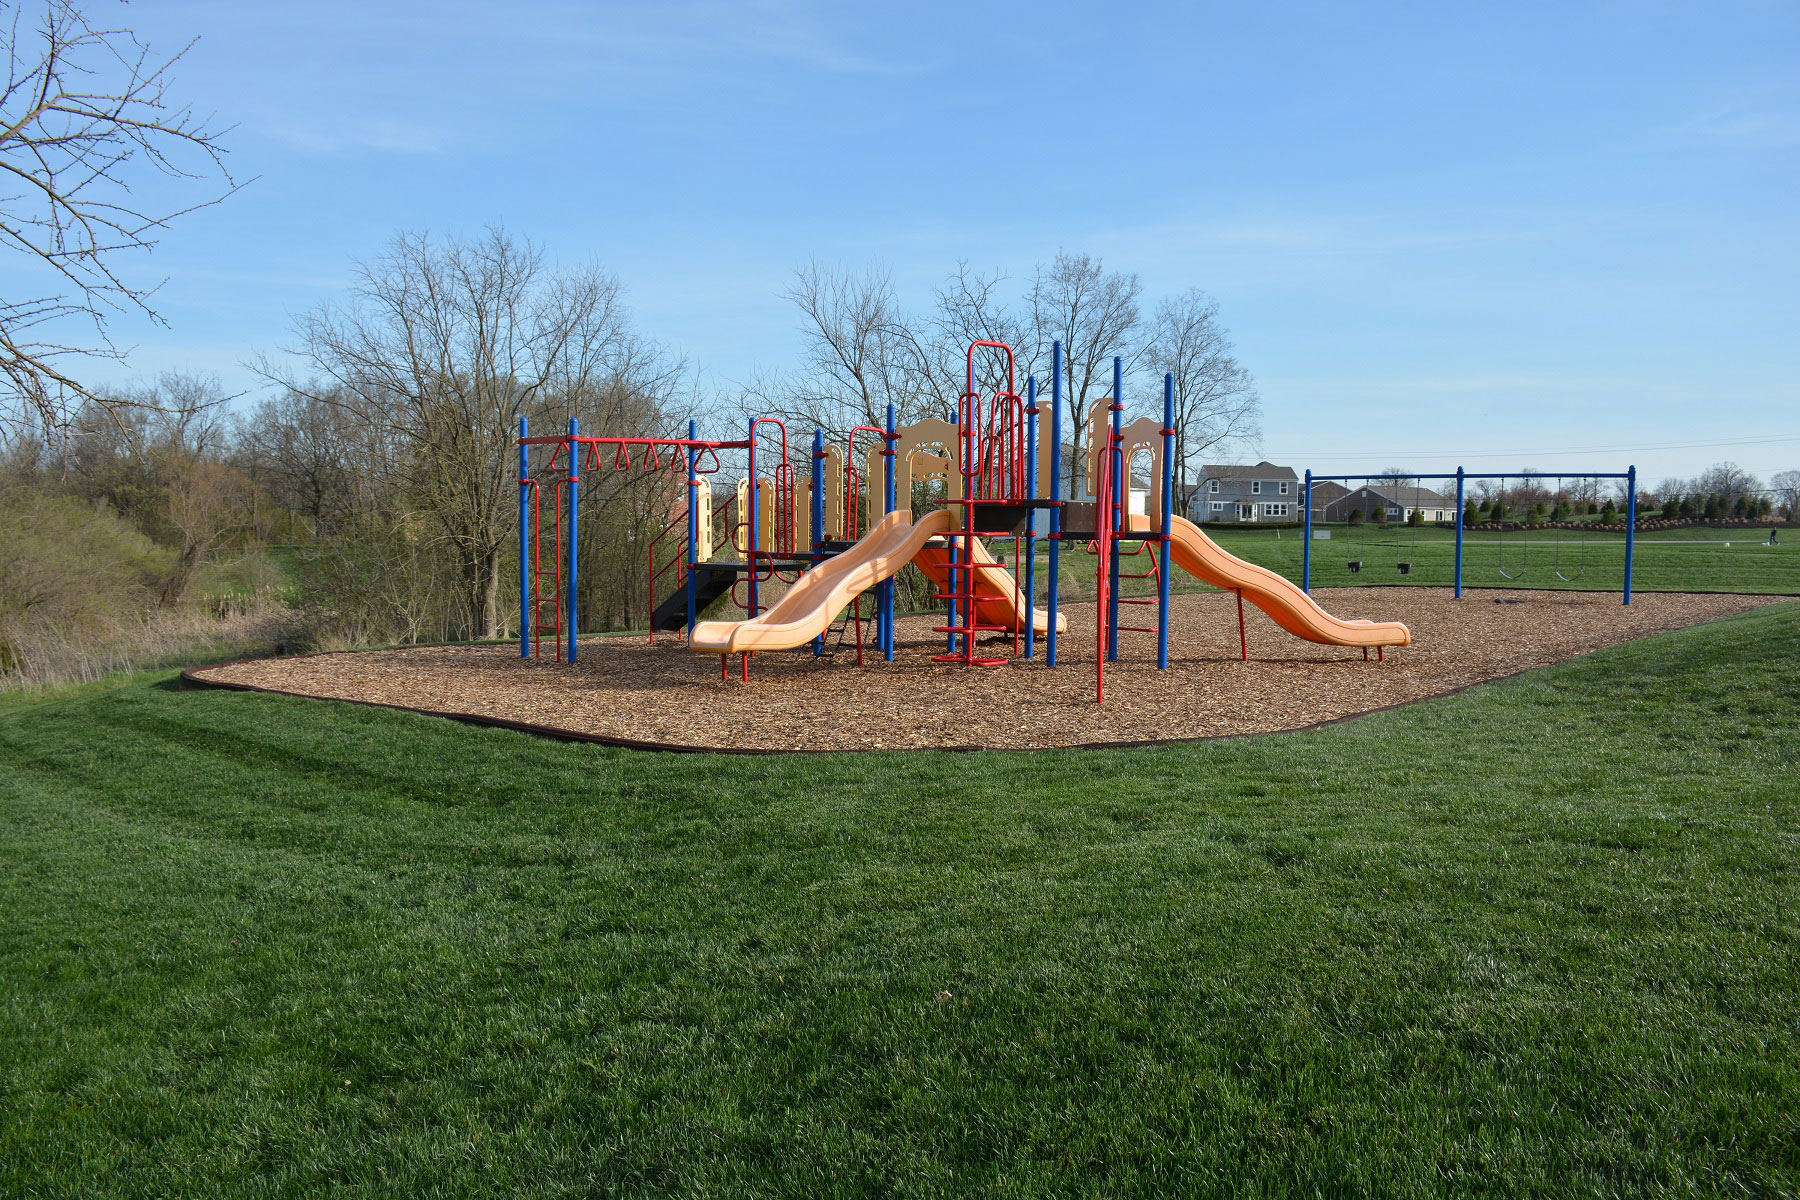 Trails of Shaker Run Playground